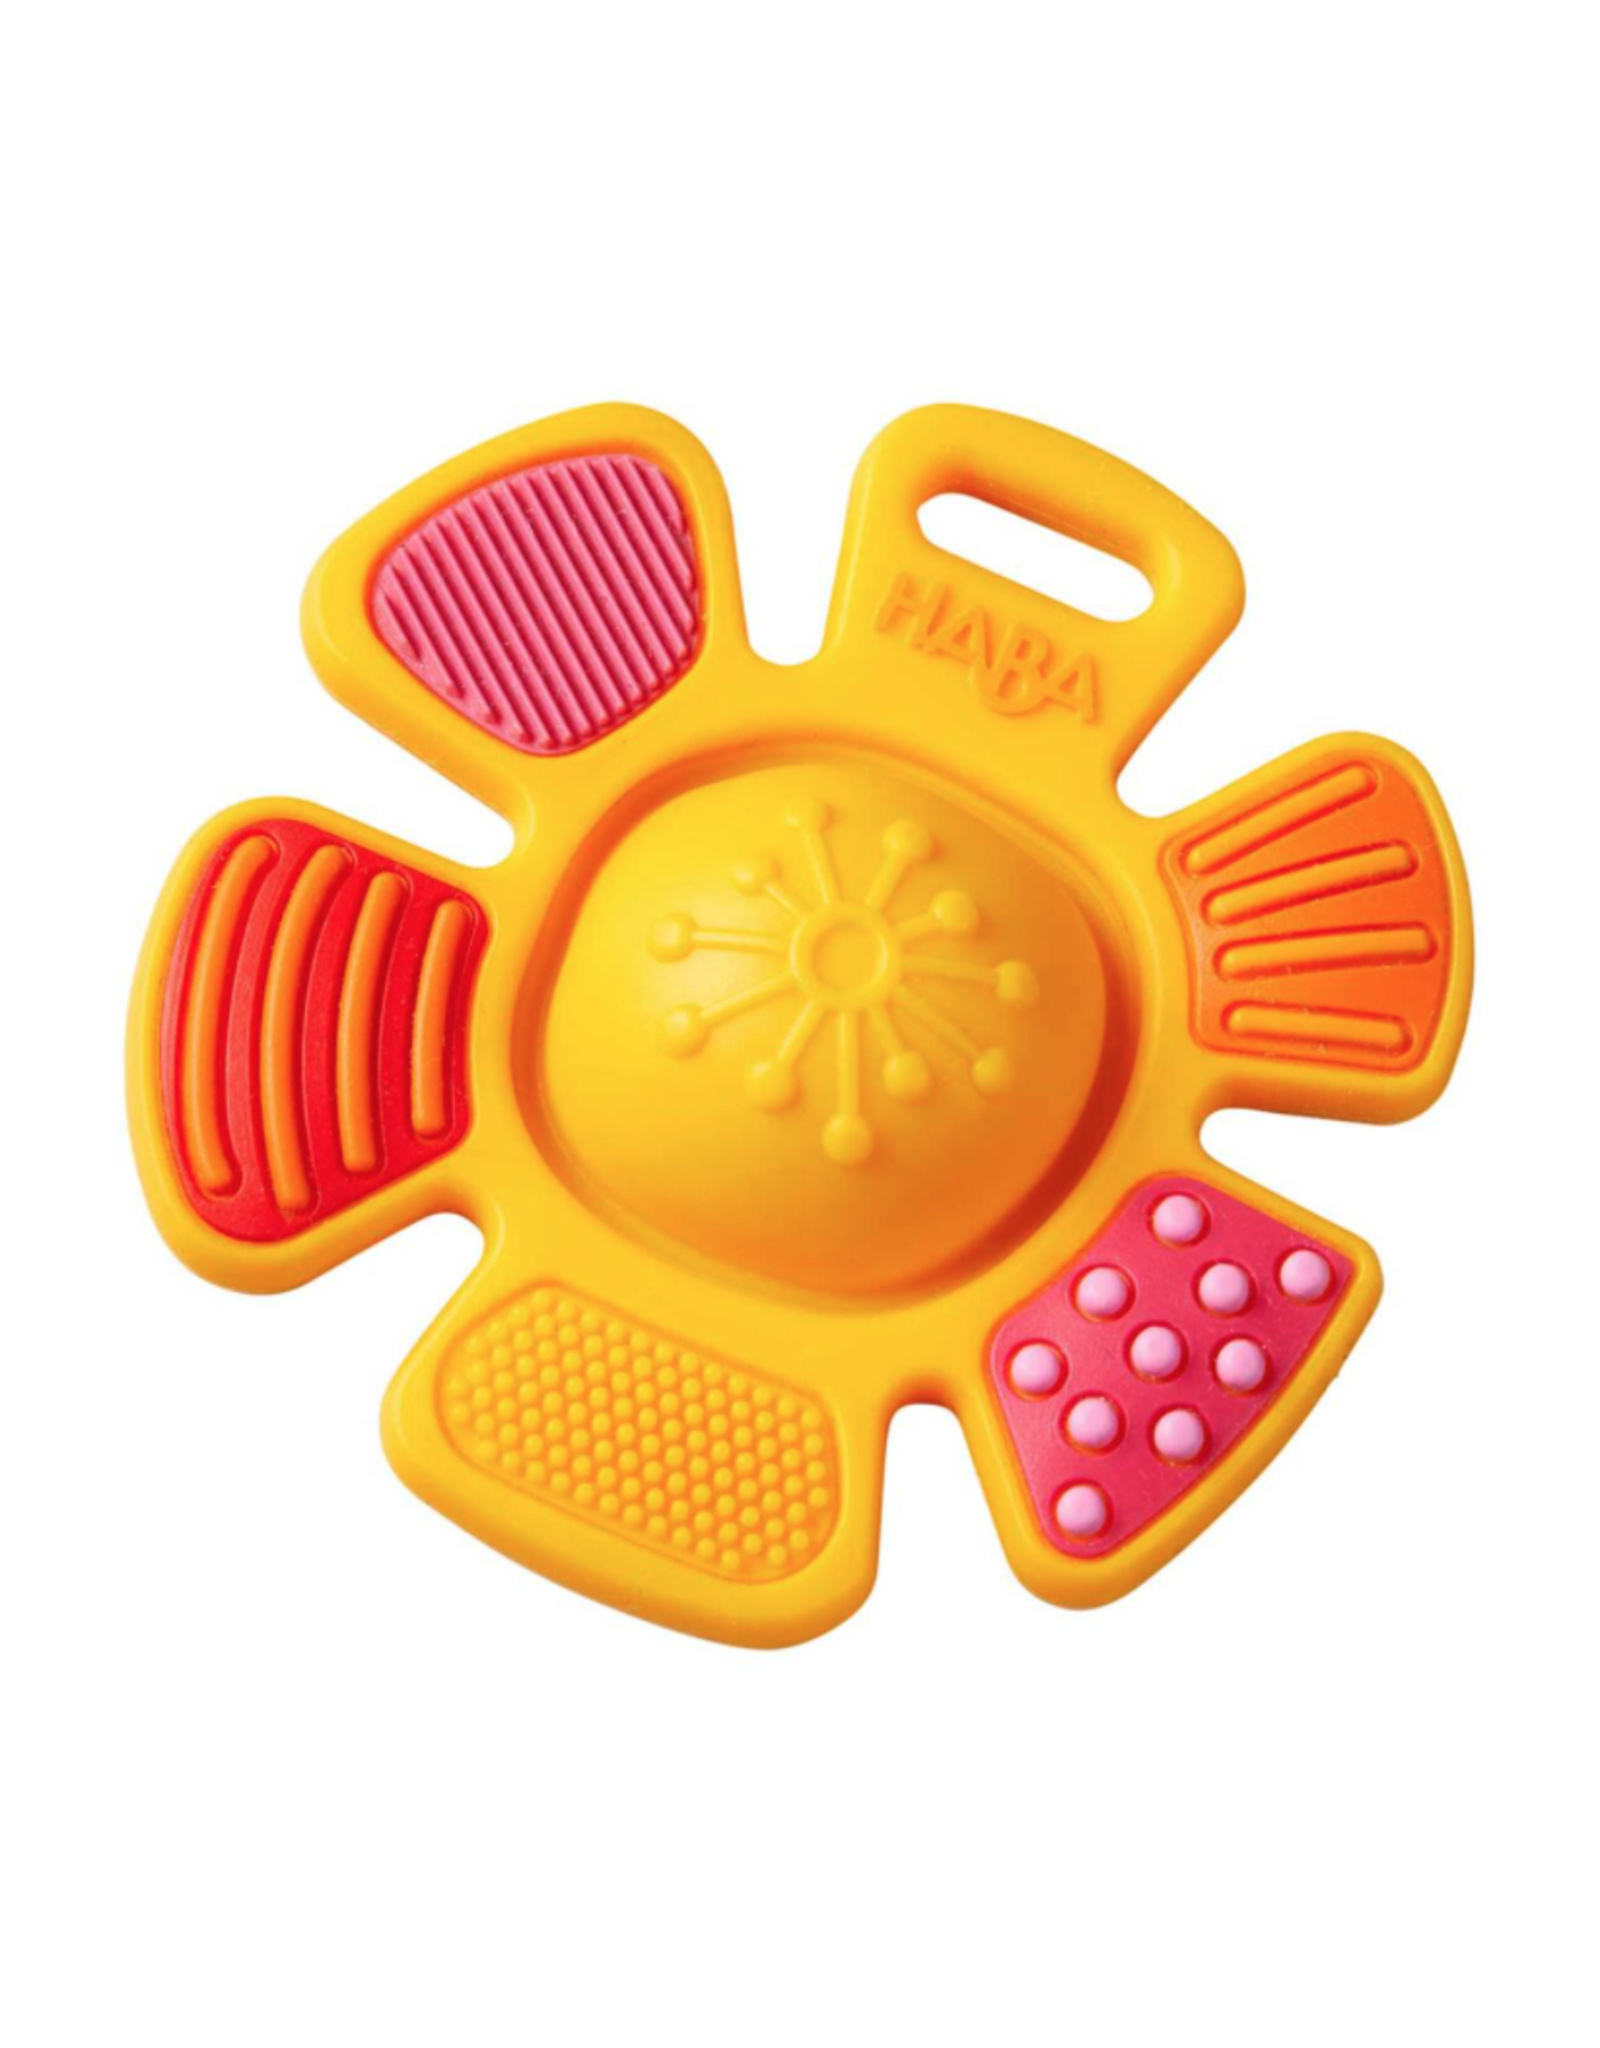 Haba Clutching Toy, Popping Flower